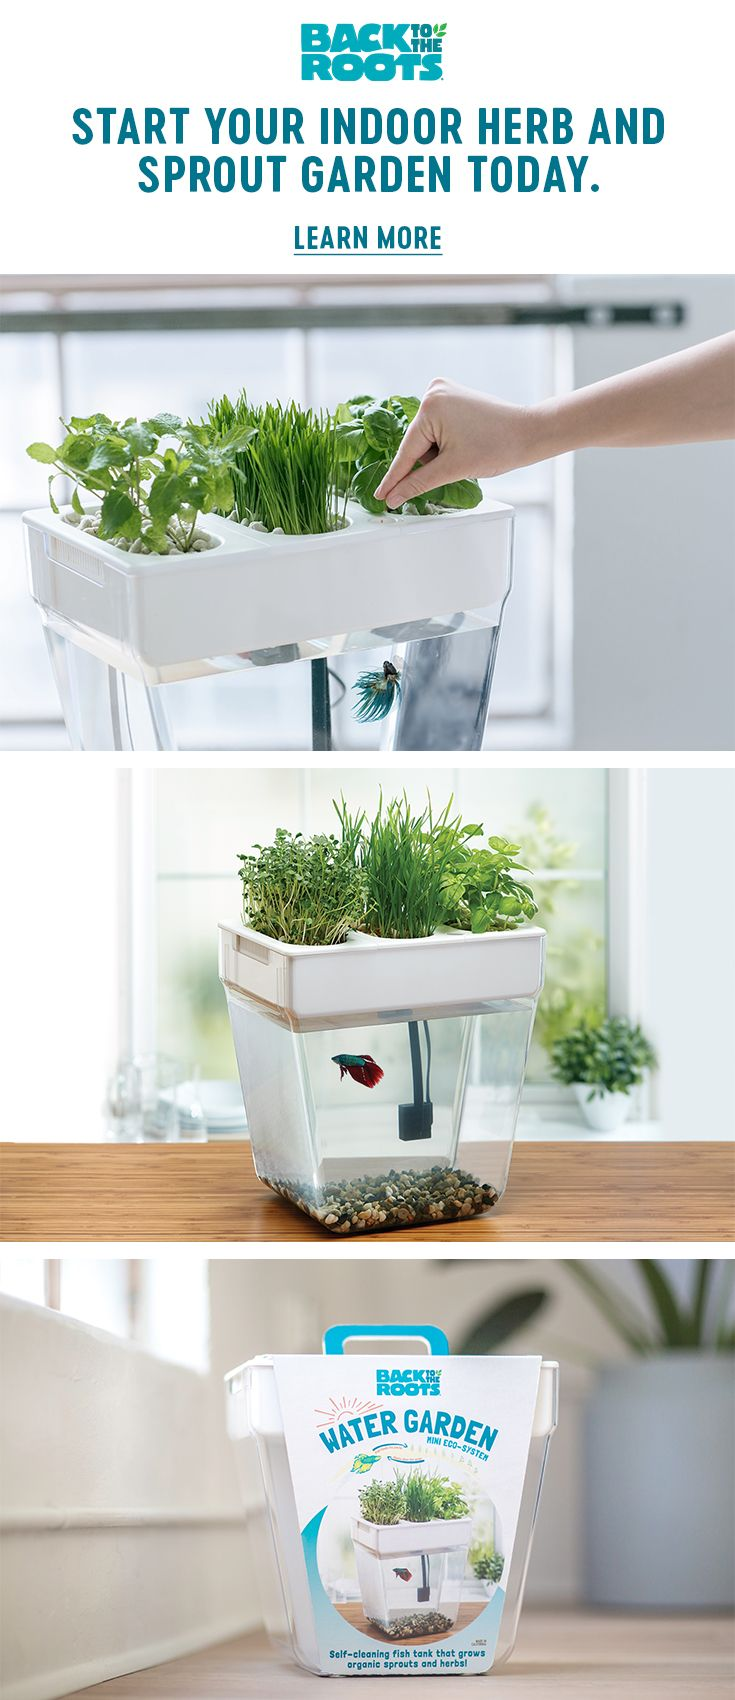 "An award-winning, home aquaponics fish tank that comes with a ""100% Guaranteed to Grow"" promise — great for beginners. It's both self-cleaning and grows organic sprouts and herbs on top. The fish waste fertilizes the plants and the plants clean the water — no water changes required!"